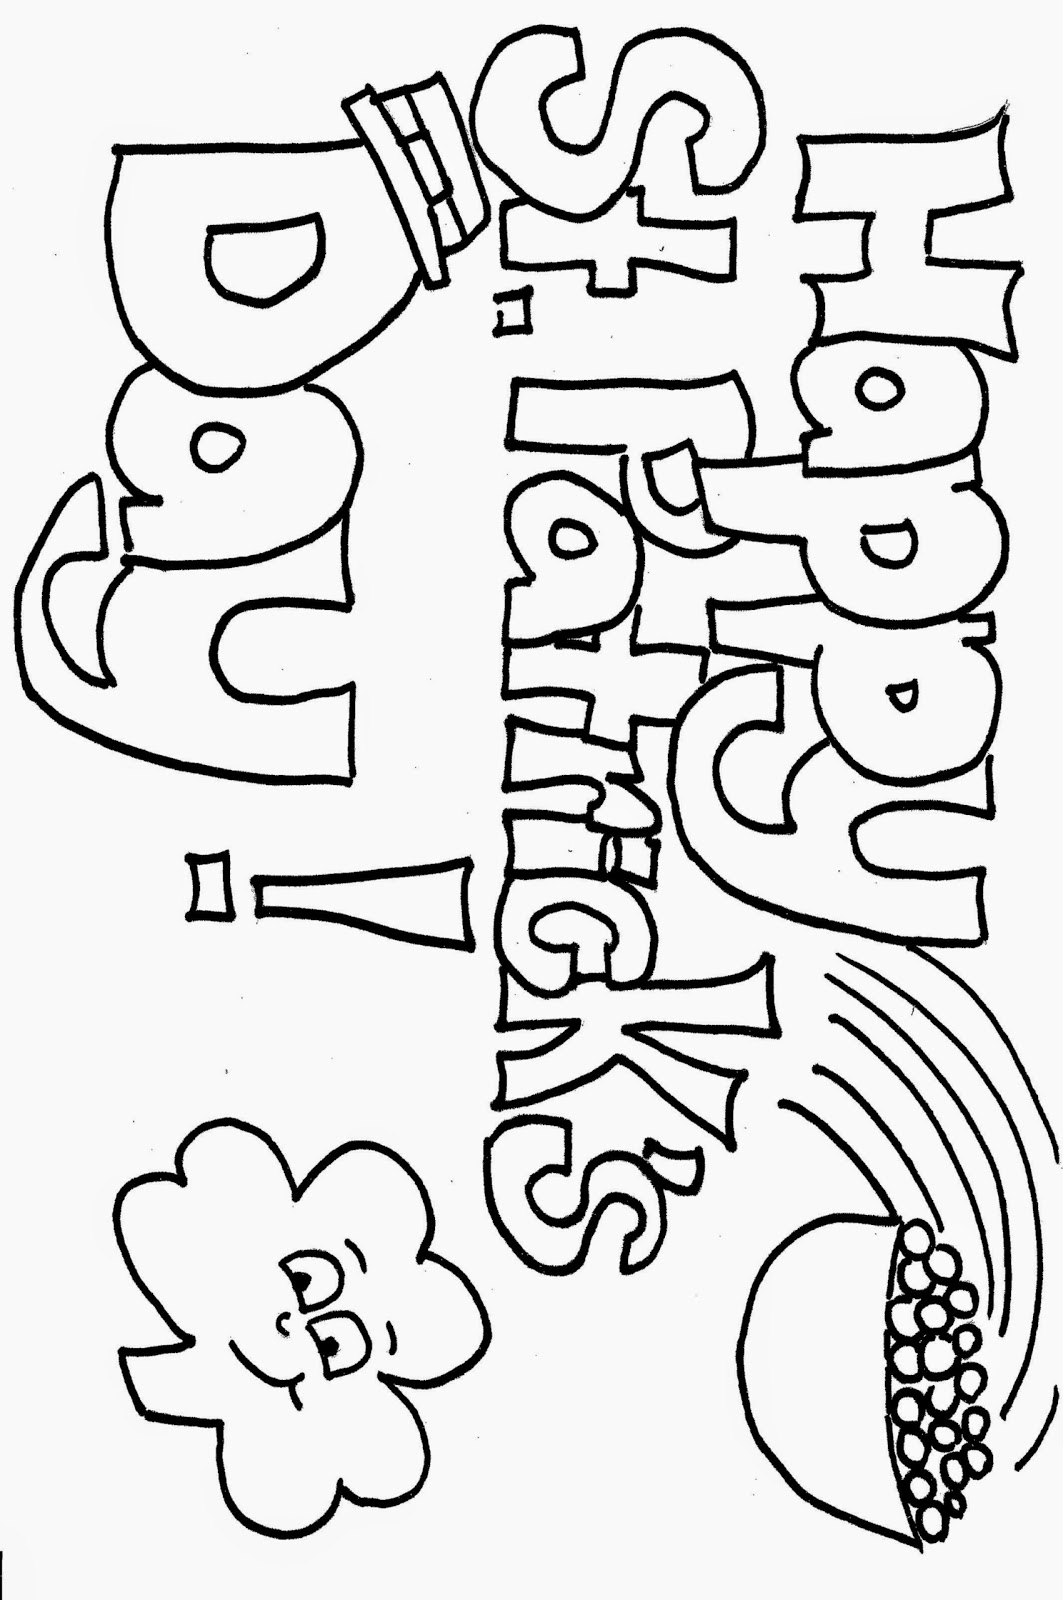 crayola shamrock coloring pages - photo#17